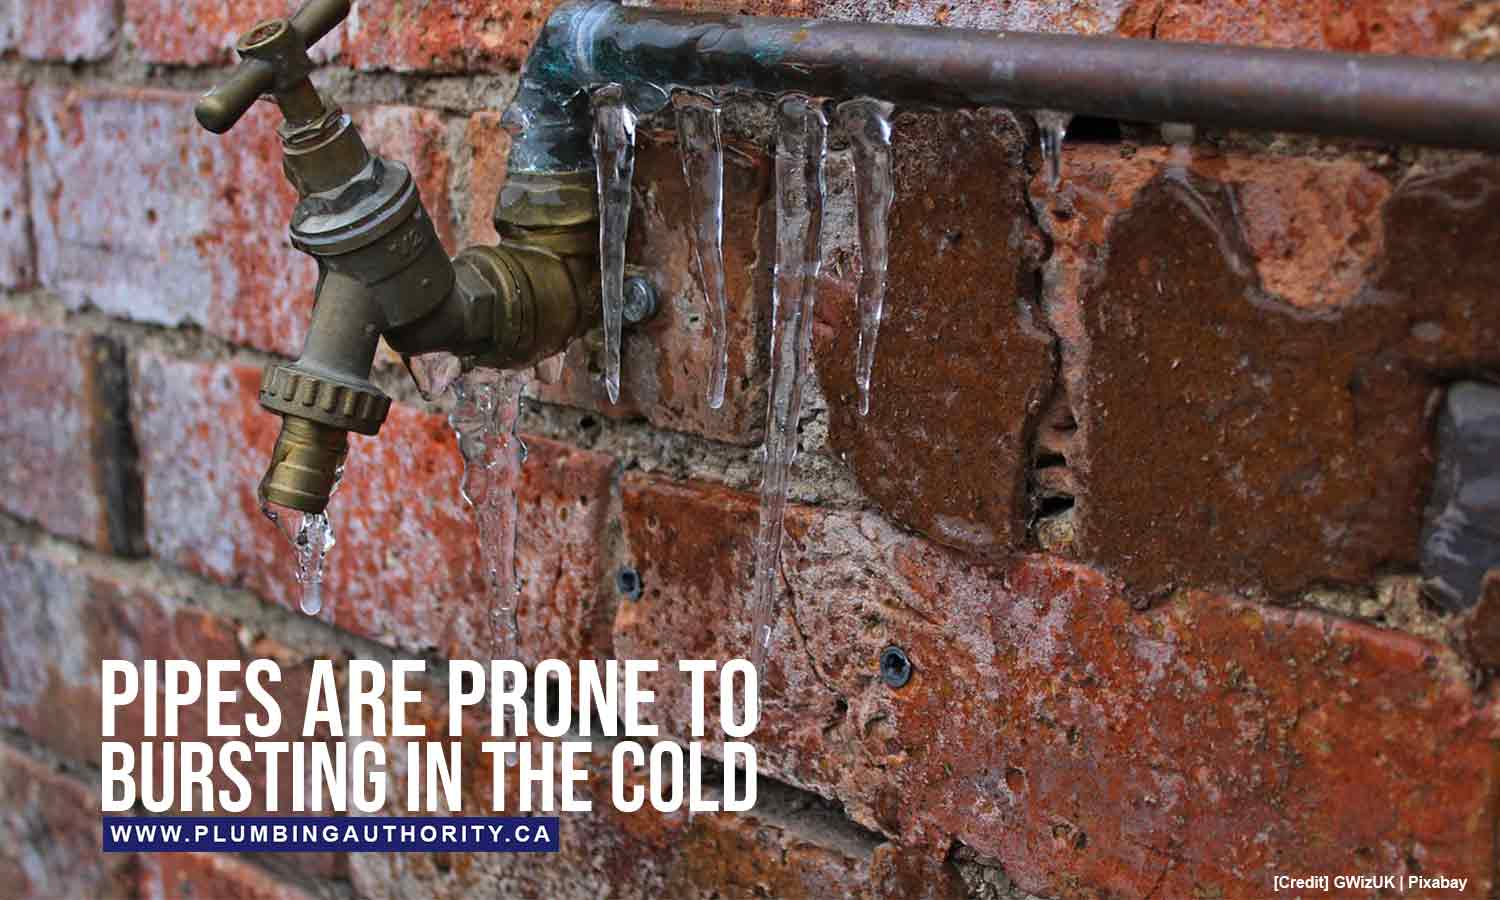 Pipes are prone to bursting in the cold